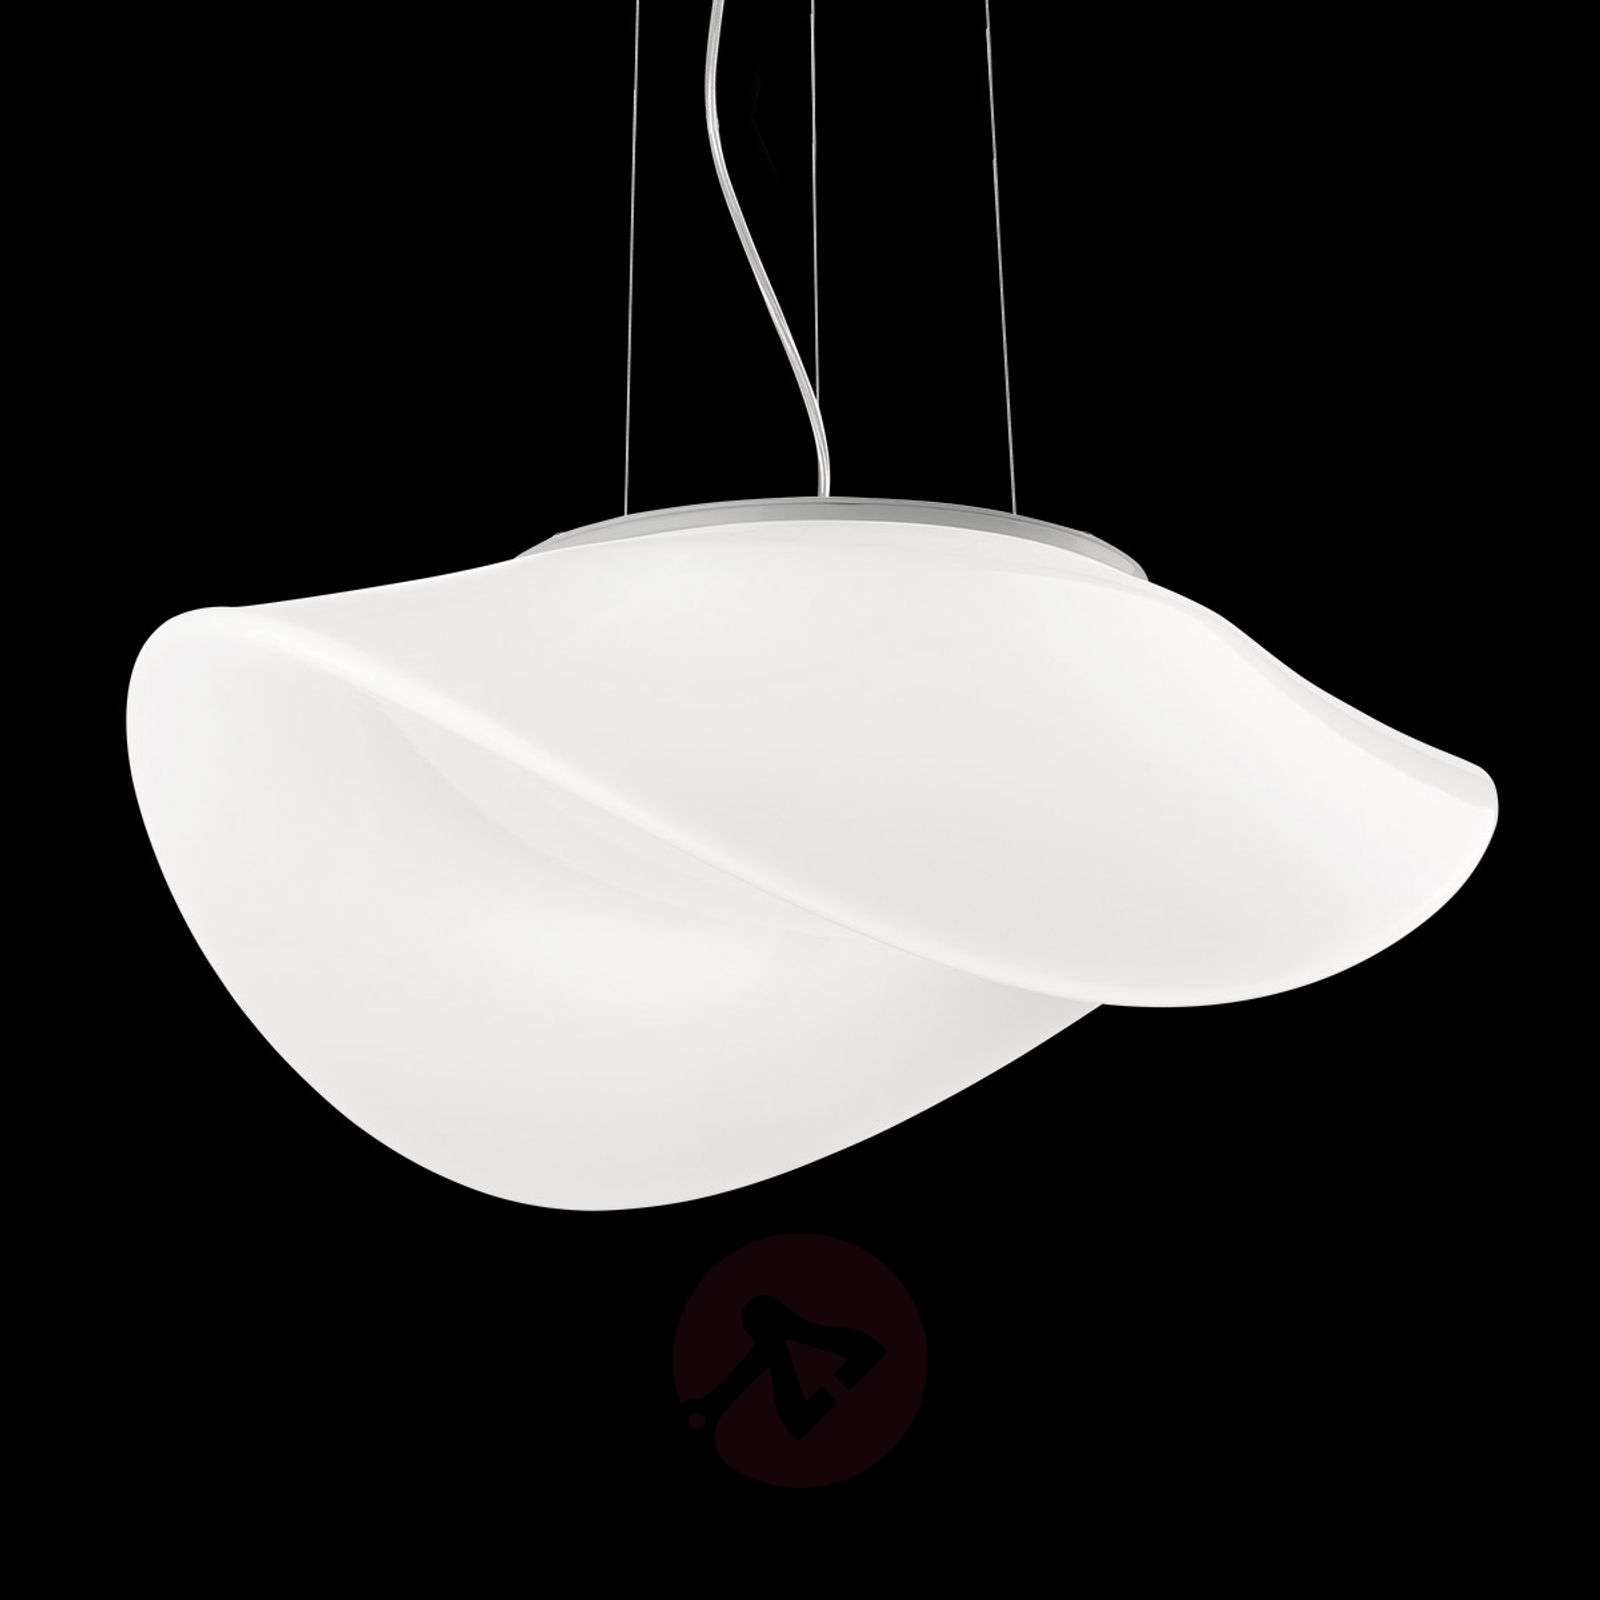 Oval glass hanging light Balance-9508104-01